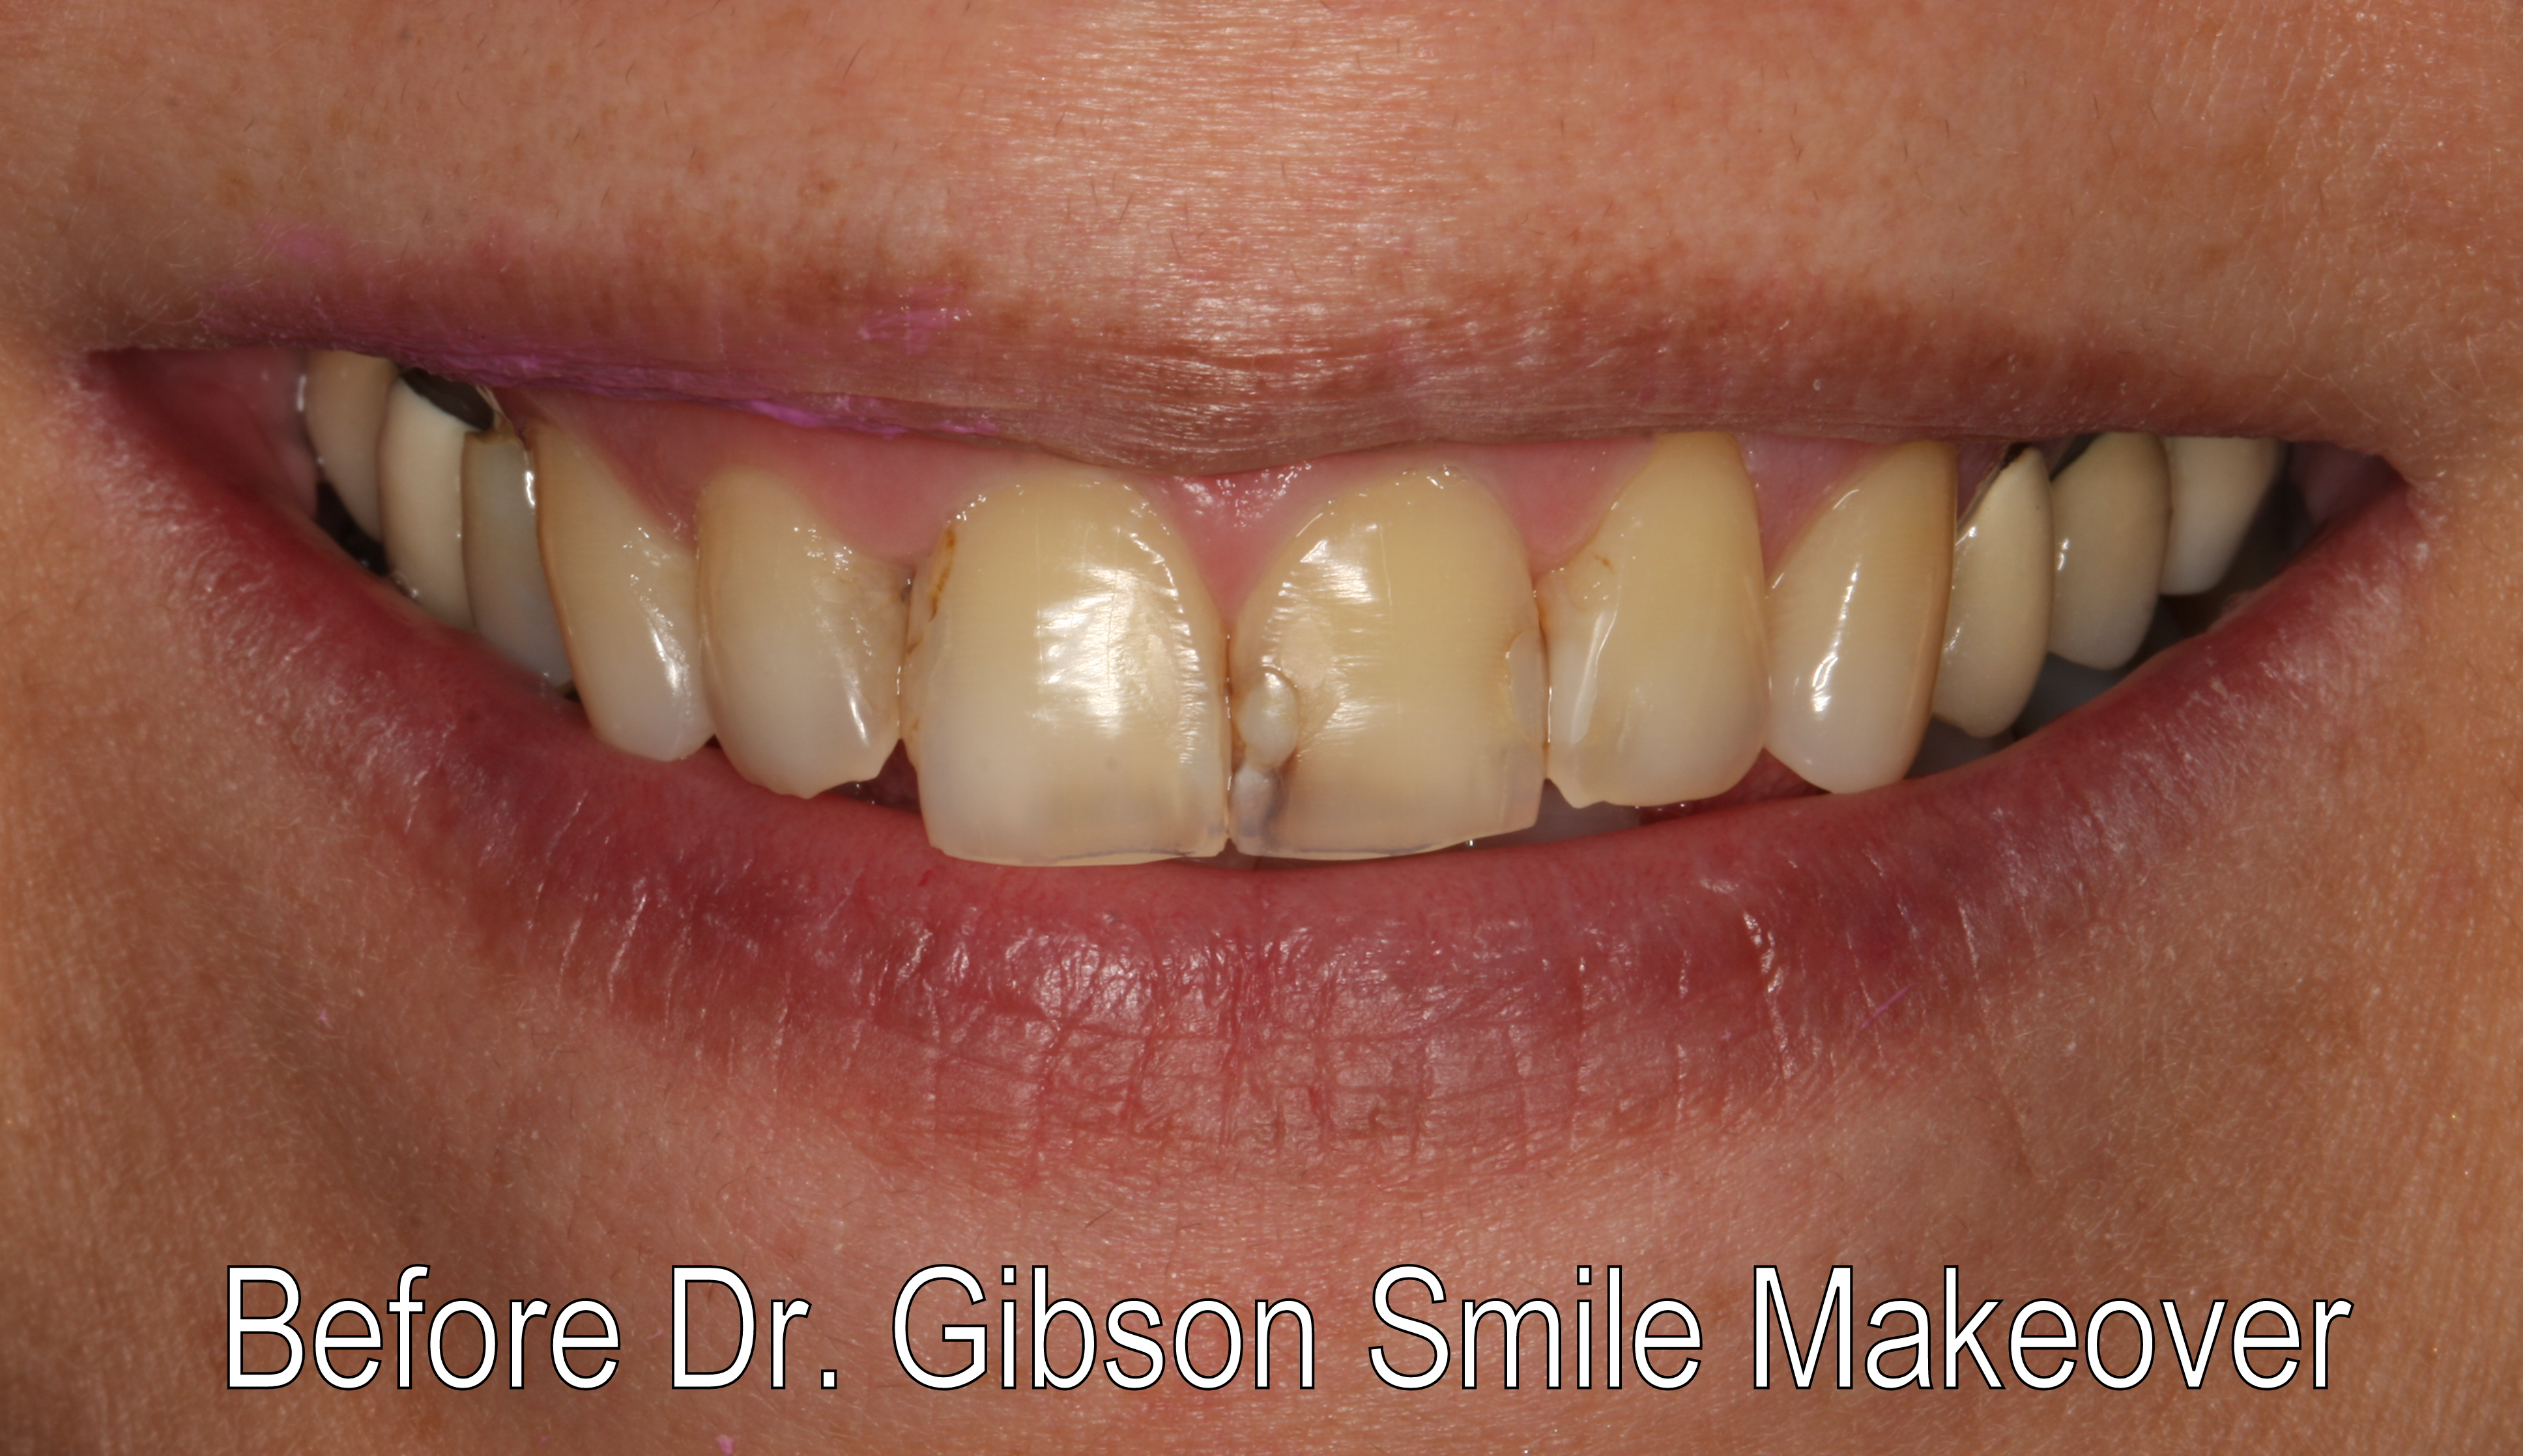 Smiles By Dr. Gibson Smile Makeover 5